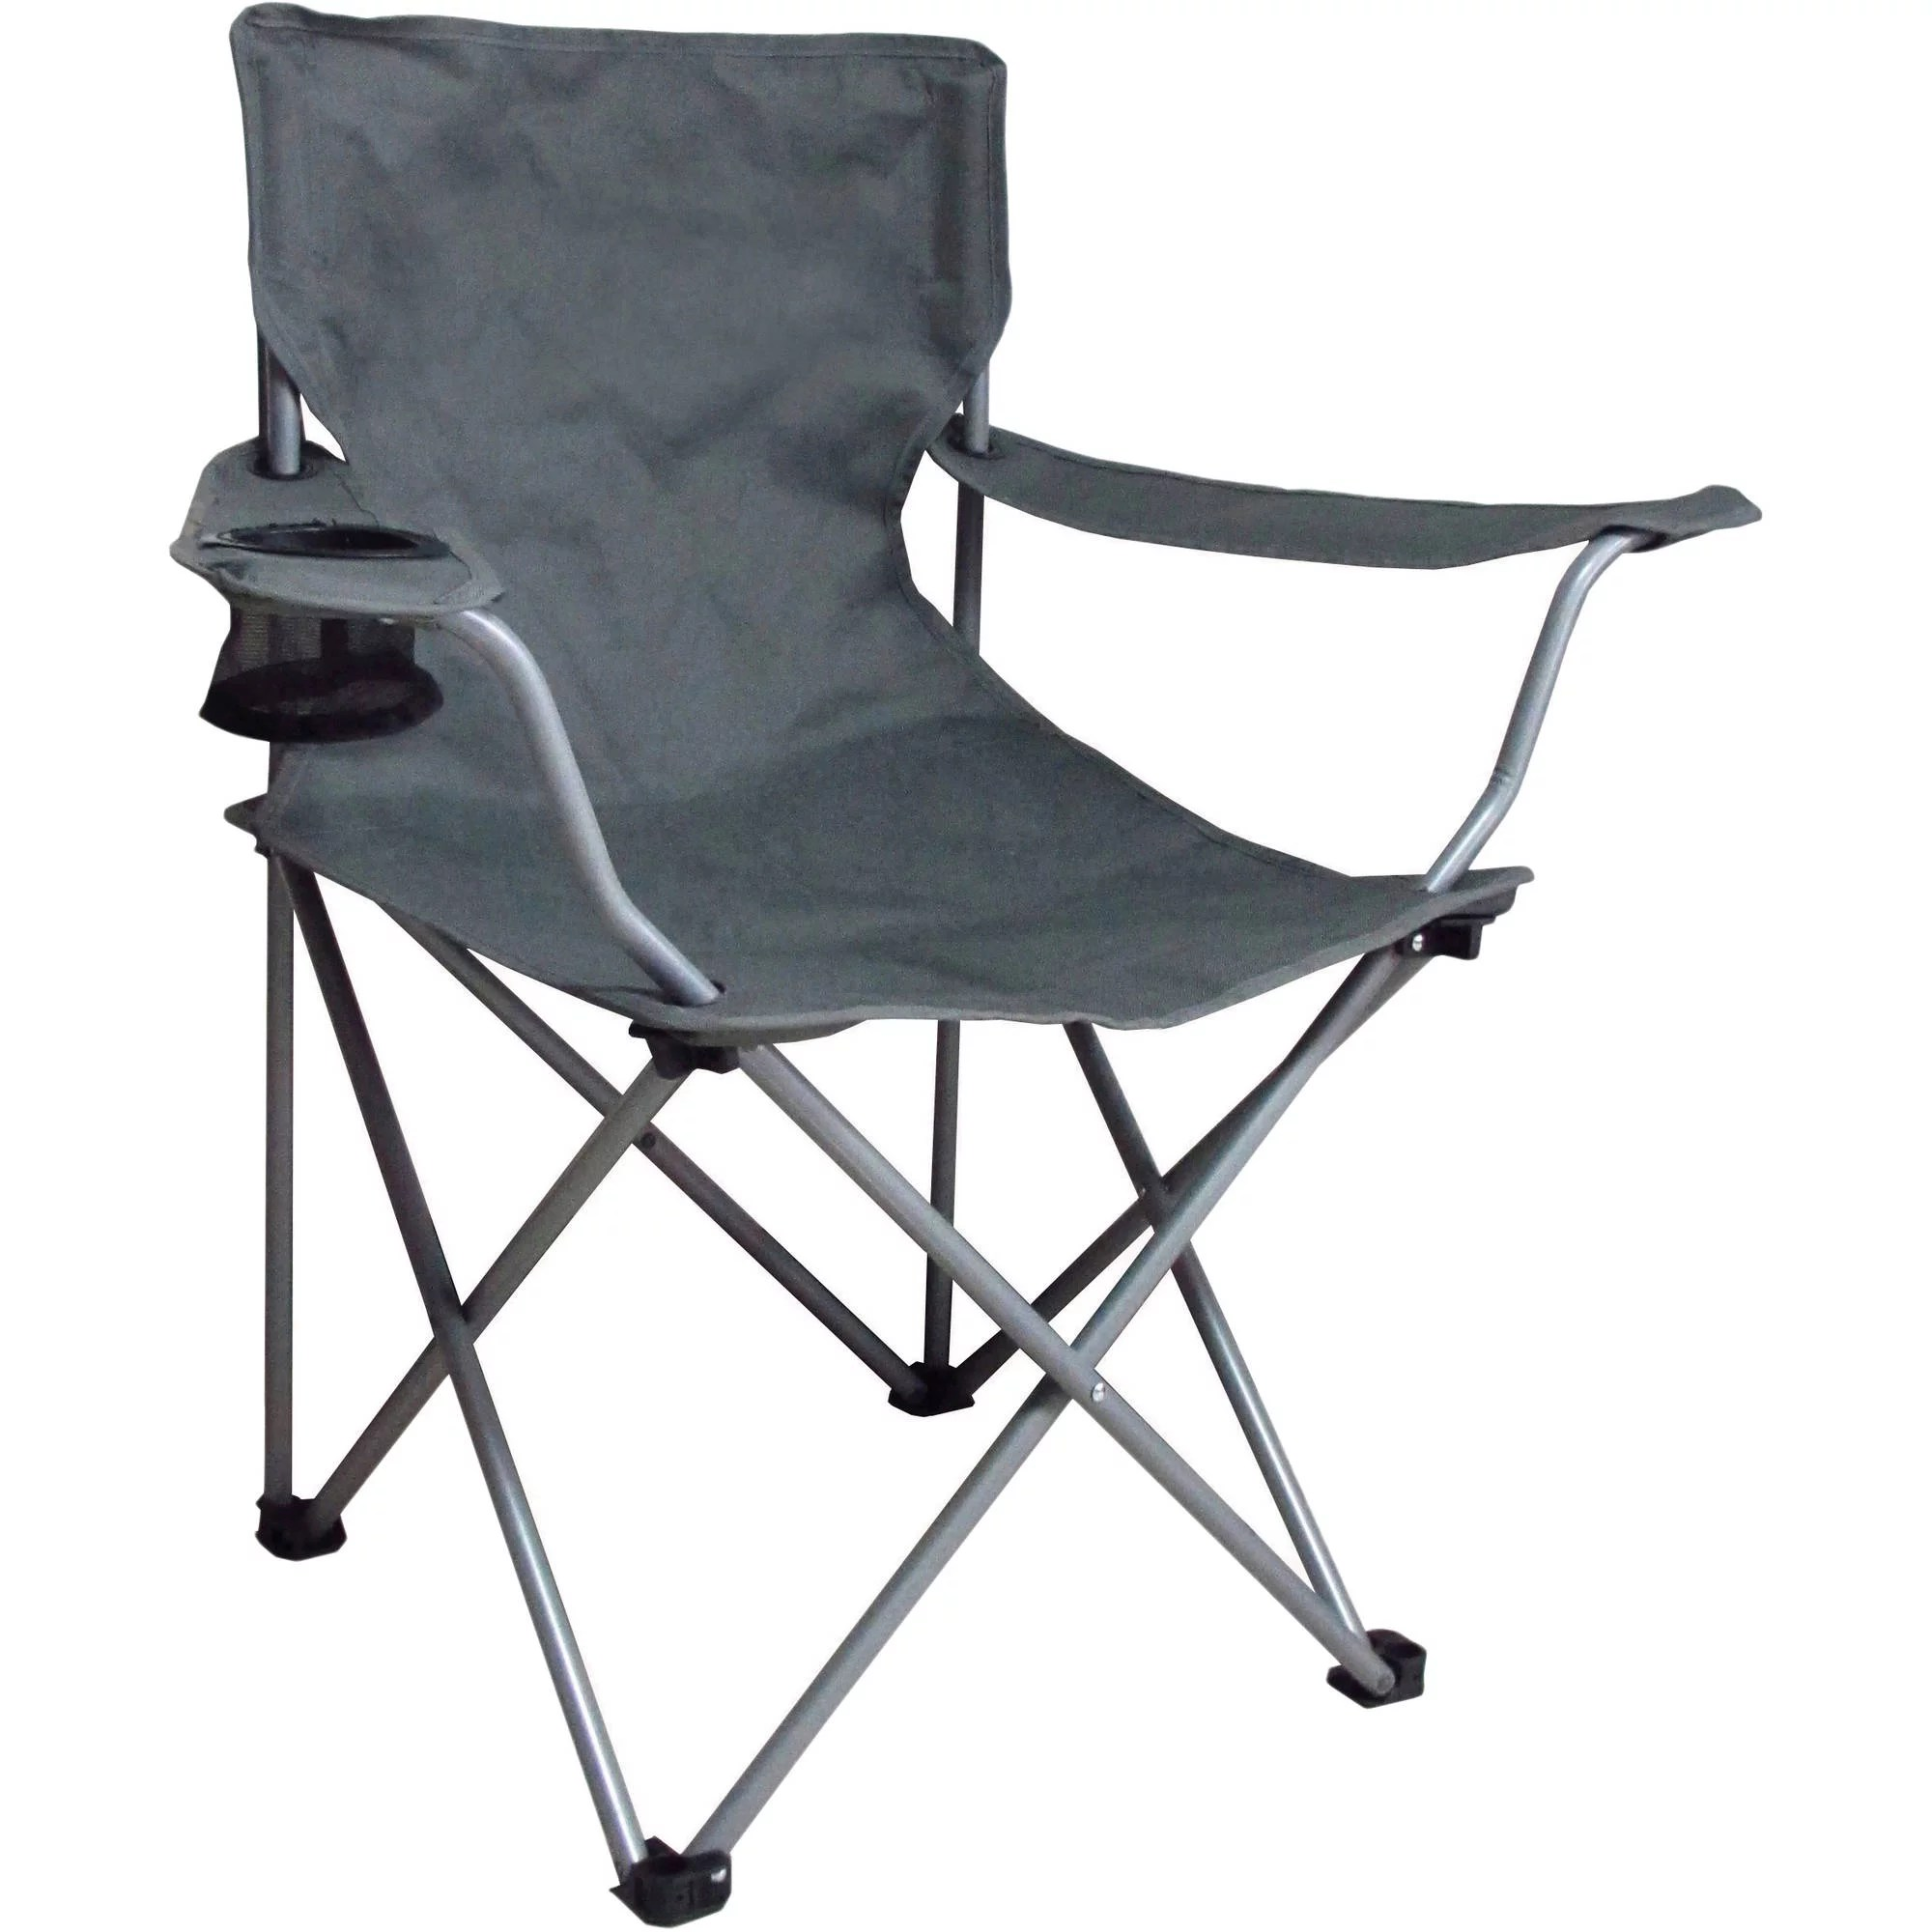 Most Comfortable Camping Chair Ozark Trail Folding Chair